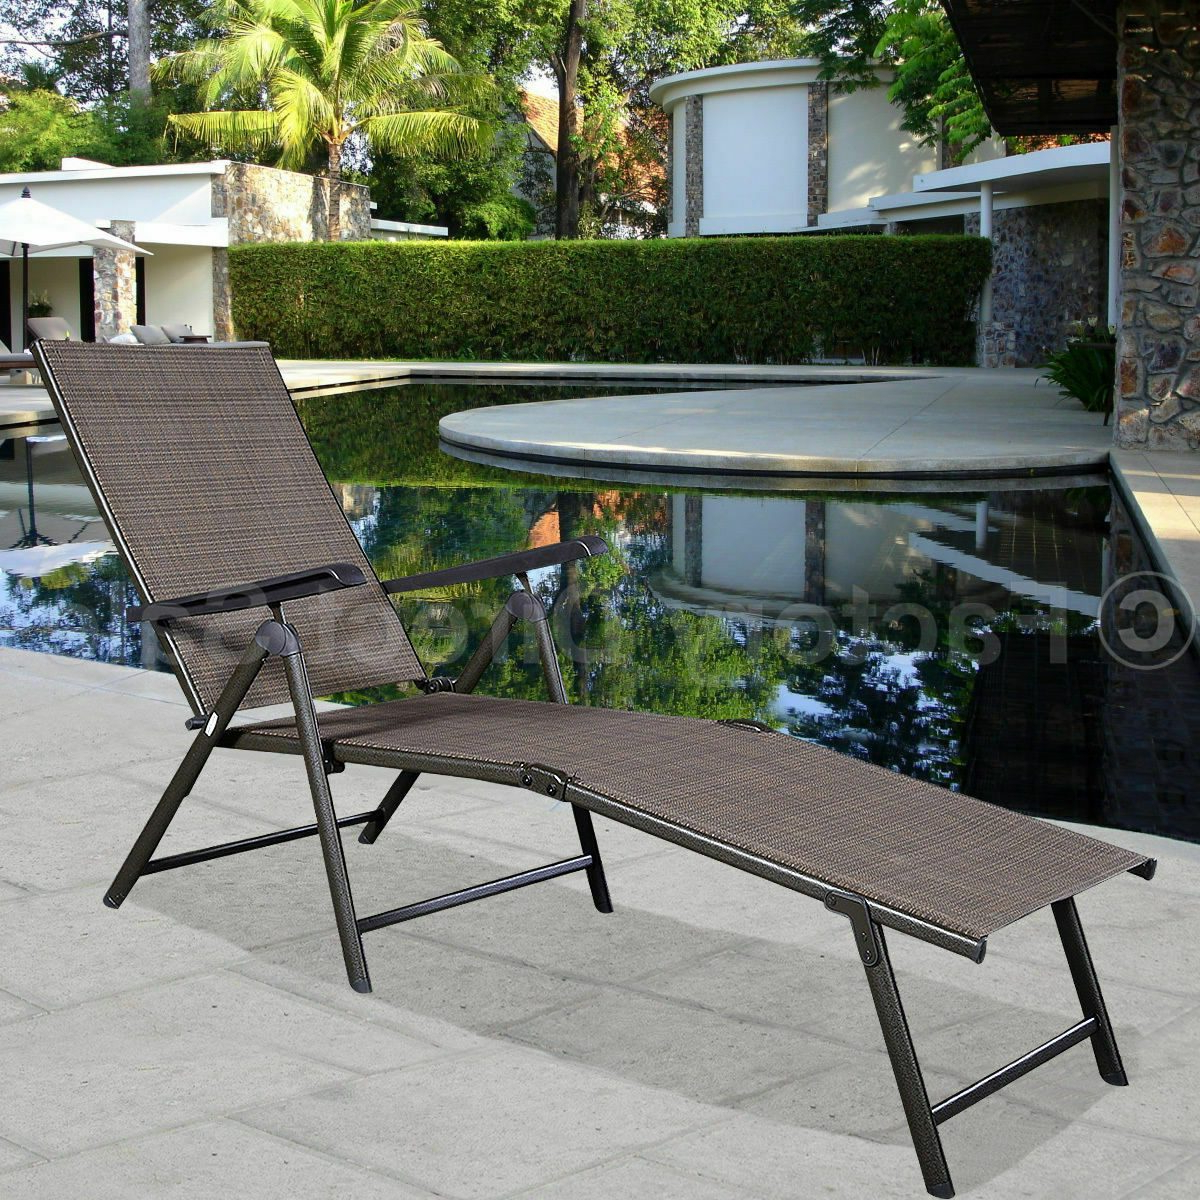 Outdoor Yard Pool Recliner Folding Lounge Table Chairs Throughout Most Current Citycw Adjustable Pool Chaise Lounge Chair Recliner Textilene Outdoor Patio  Furniture (View 19 of 25)